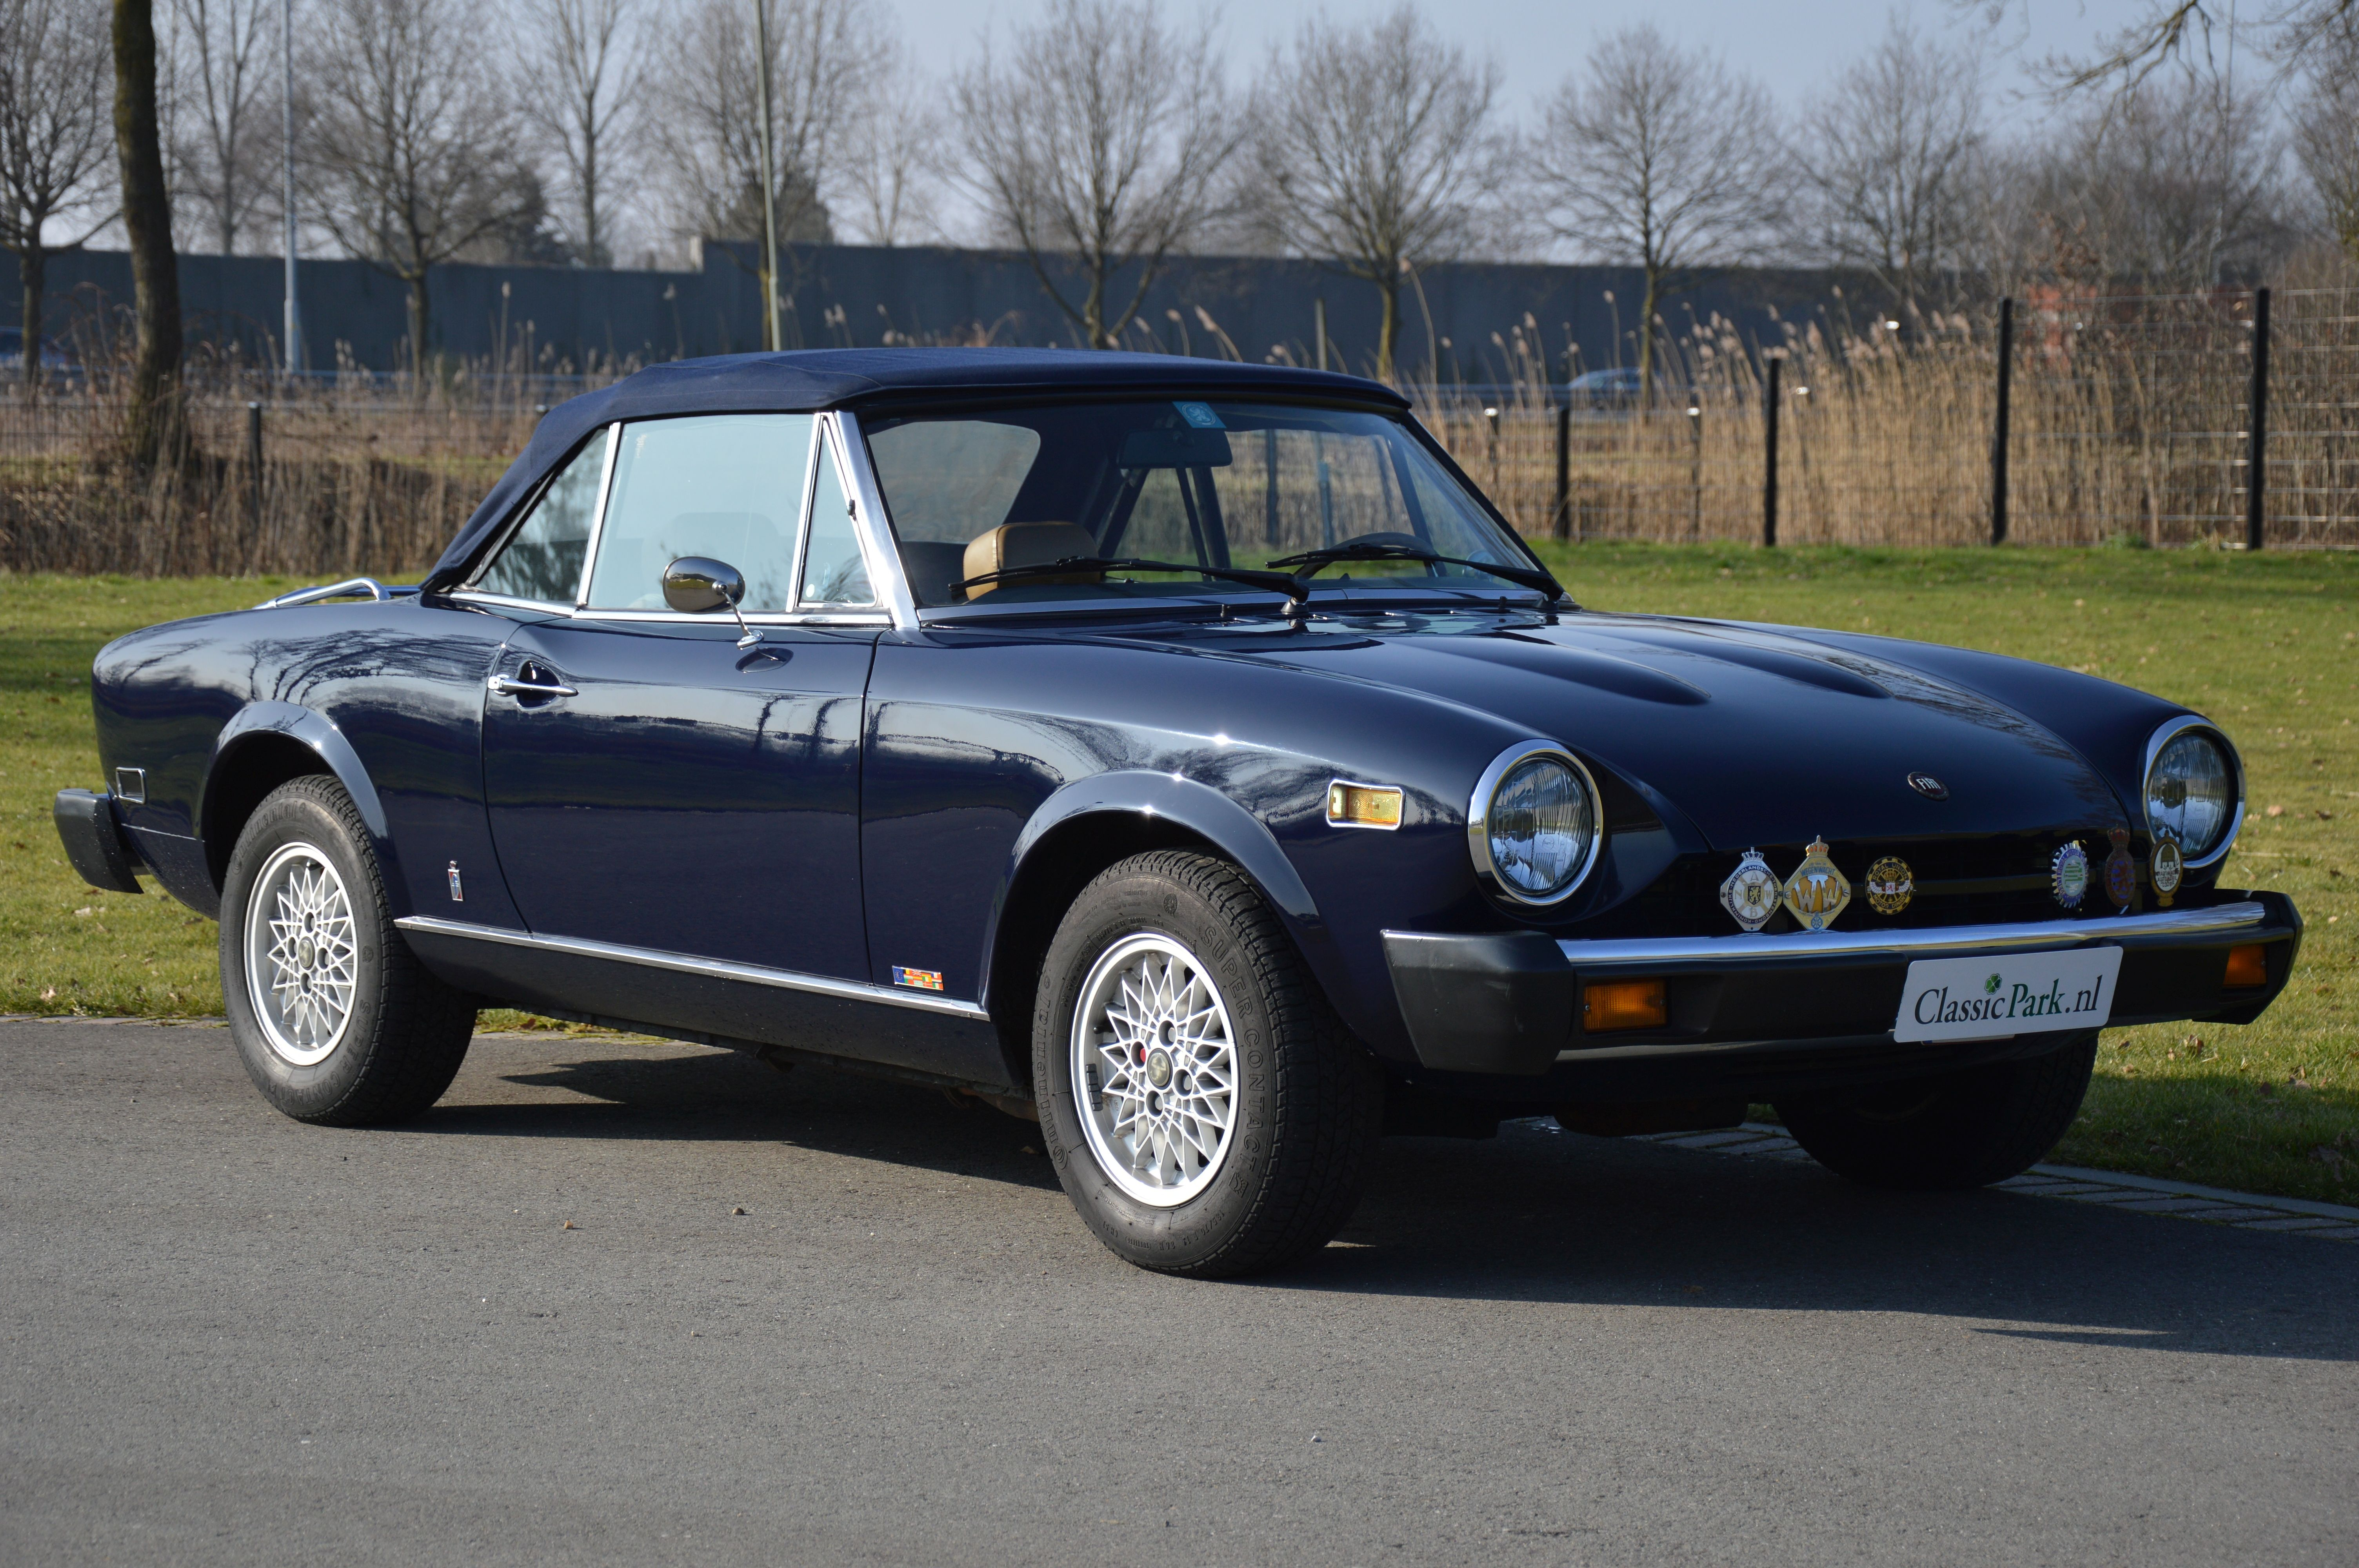 classic park cars fiat 124 sport spider. Black Bedroom Furniture Sets. Home Design Ideas